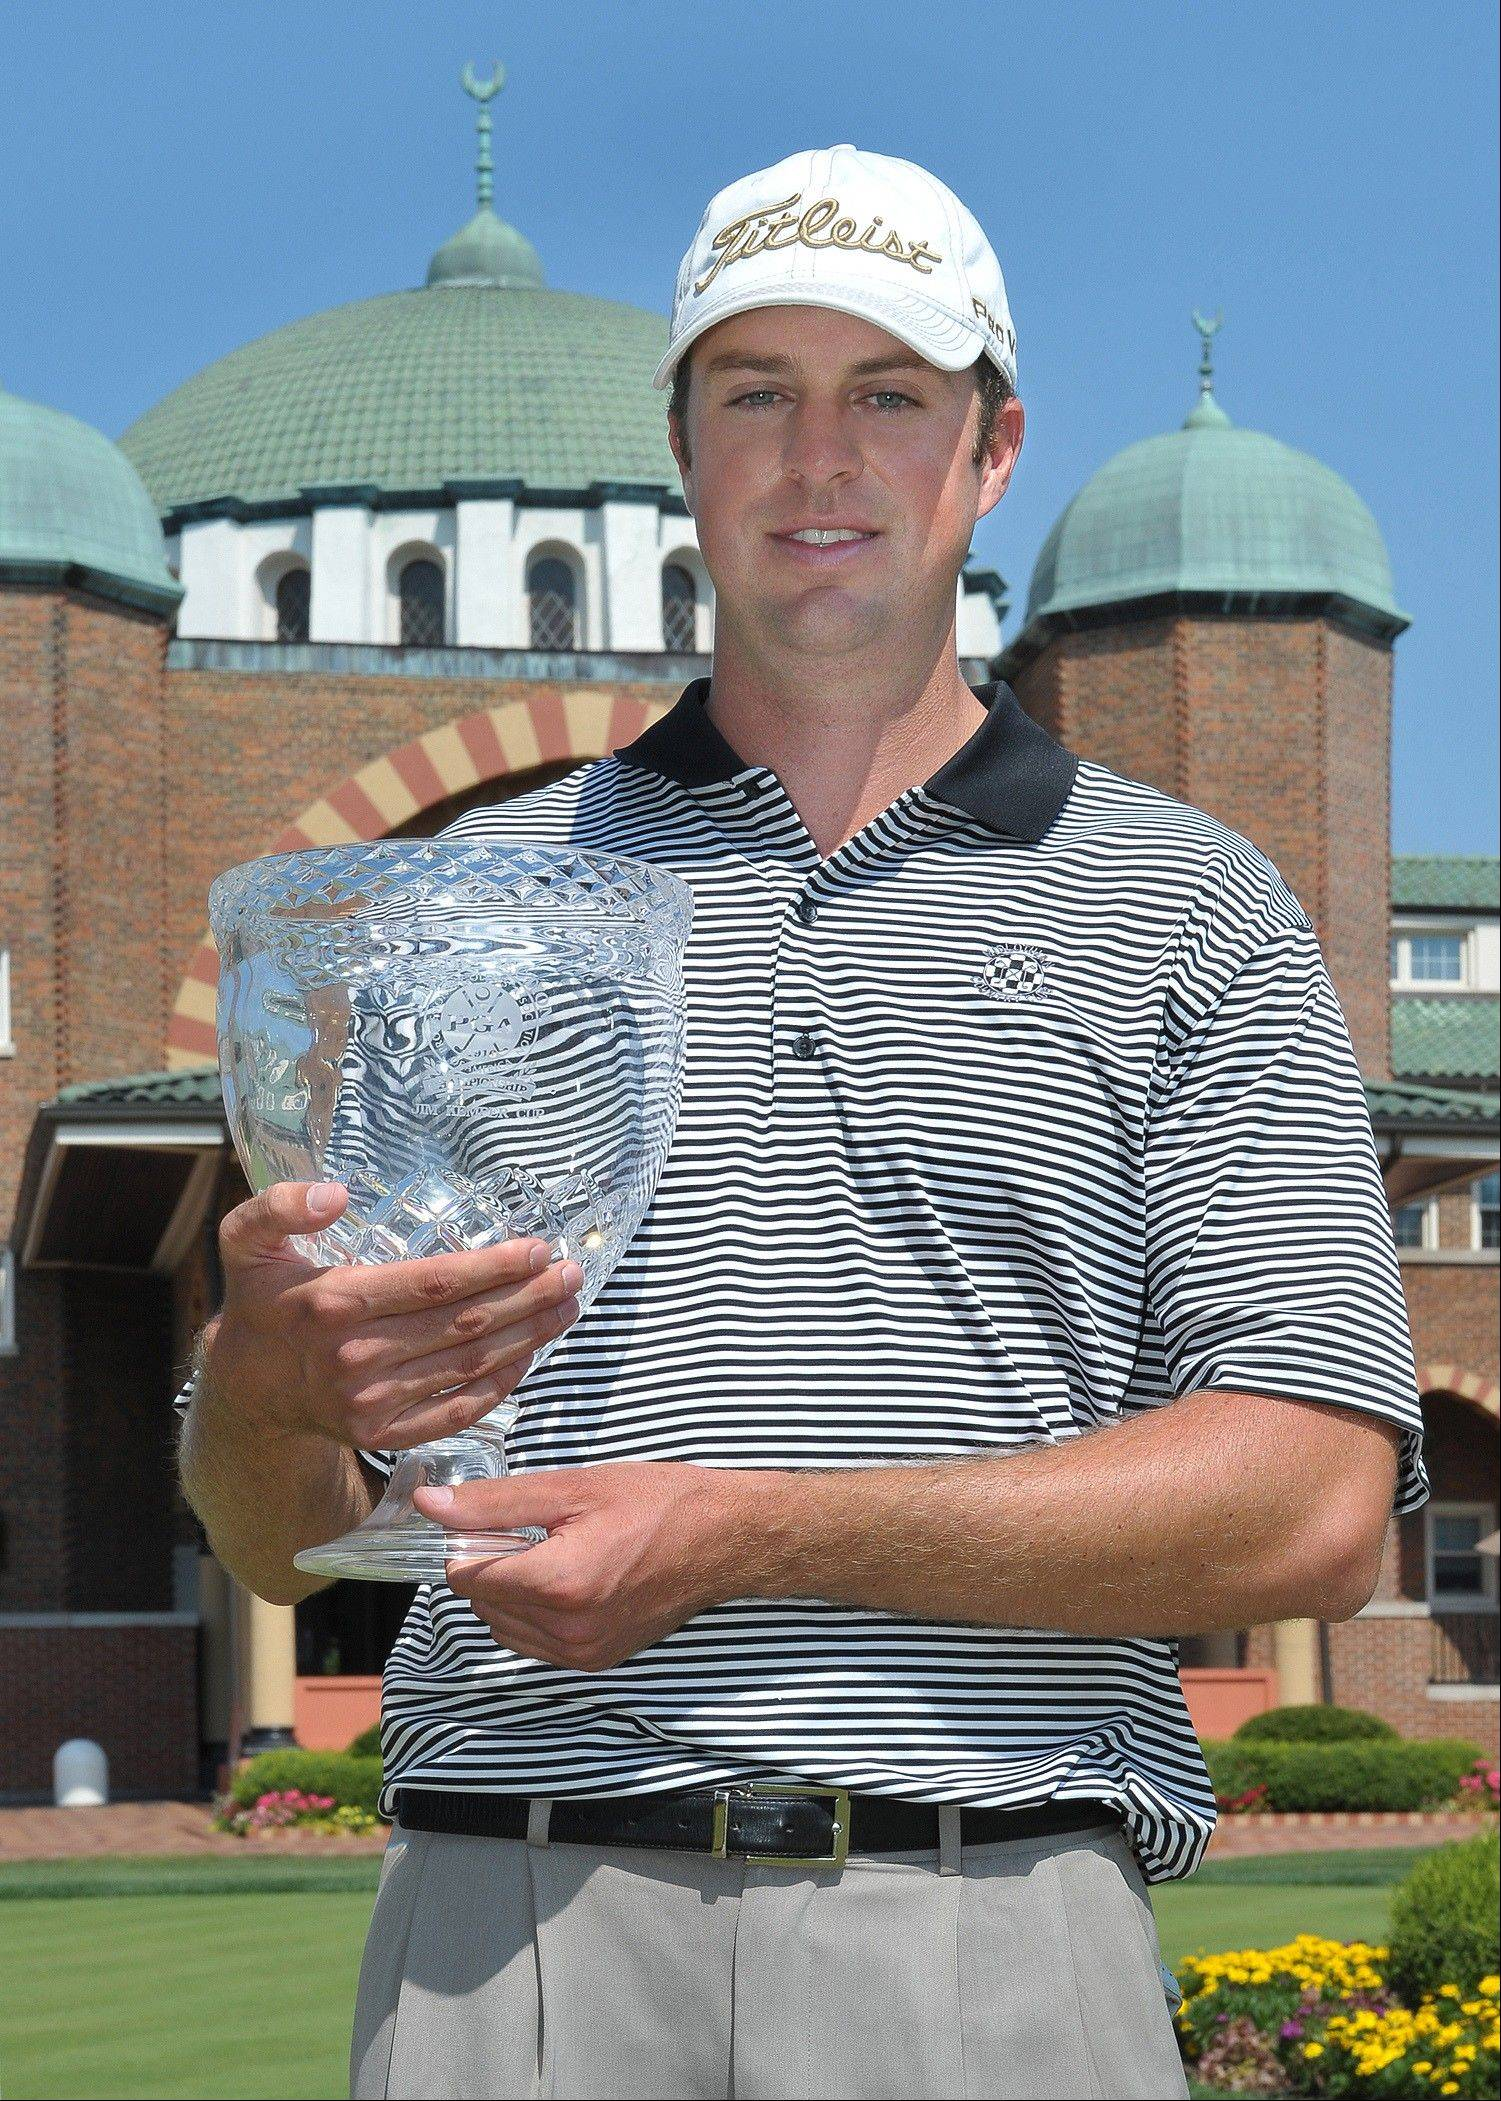 Frank Hohenadel, who won the 89th Illinois PGA title last year at Medinah Country Club, is looking forward to seeing Team USA and Team Europe compete in the 2012 Ryder Cup next month. In the meantime, he'll try to defend his Illinois PGA title at Stonewall Orchard next week.